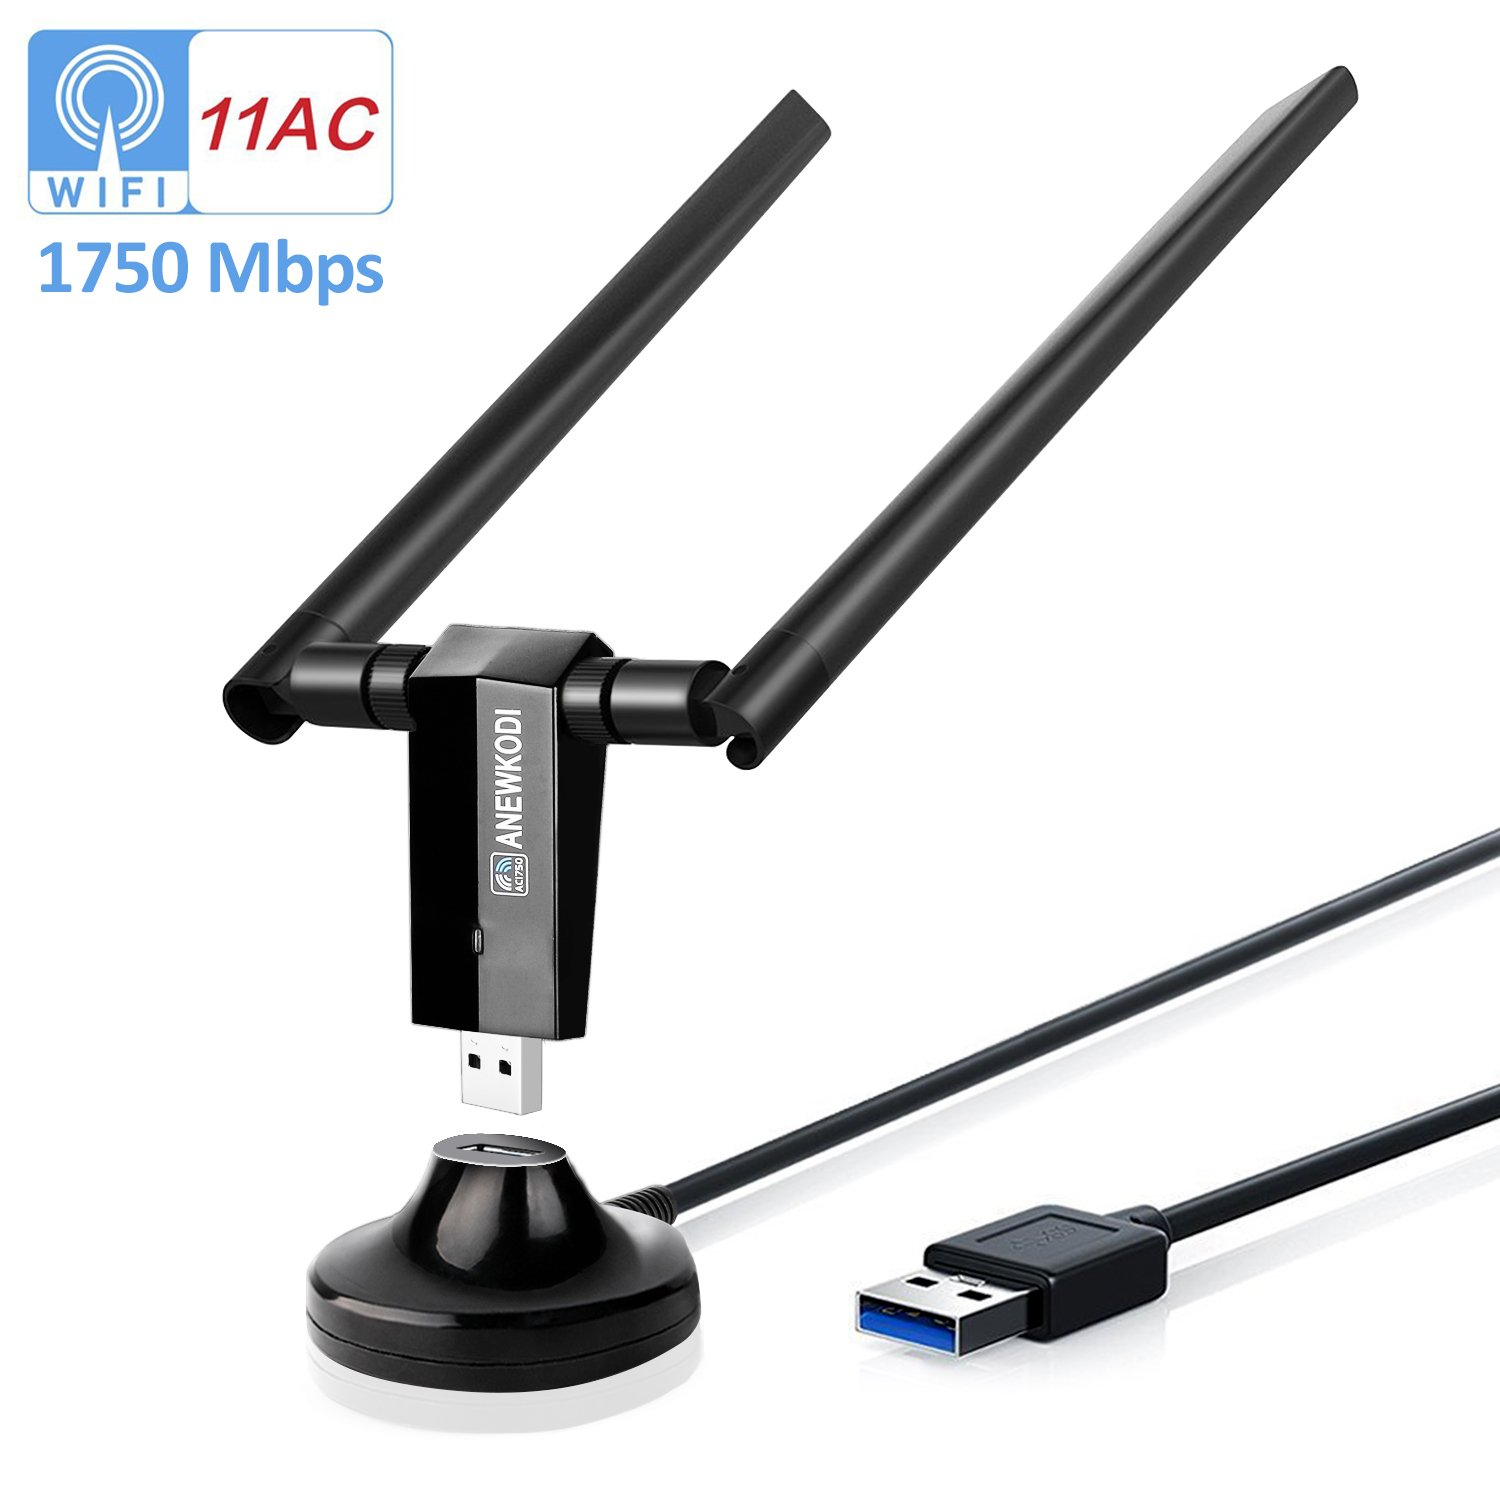 ANEWKODI AC1750Mbps USB WiFi Adapter, USB WiFi Adapter for PC Dual Band Wireless Adapter 2.4GHz/5.8GHz 1300Mbps 802.11ac/b/g/n Wireless Adapter Support Win10/8/7/Vista/XP/2000, Mac Os by ANEWKODI